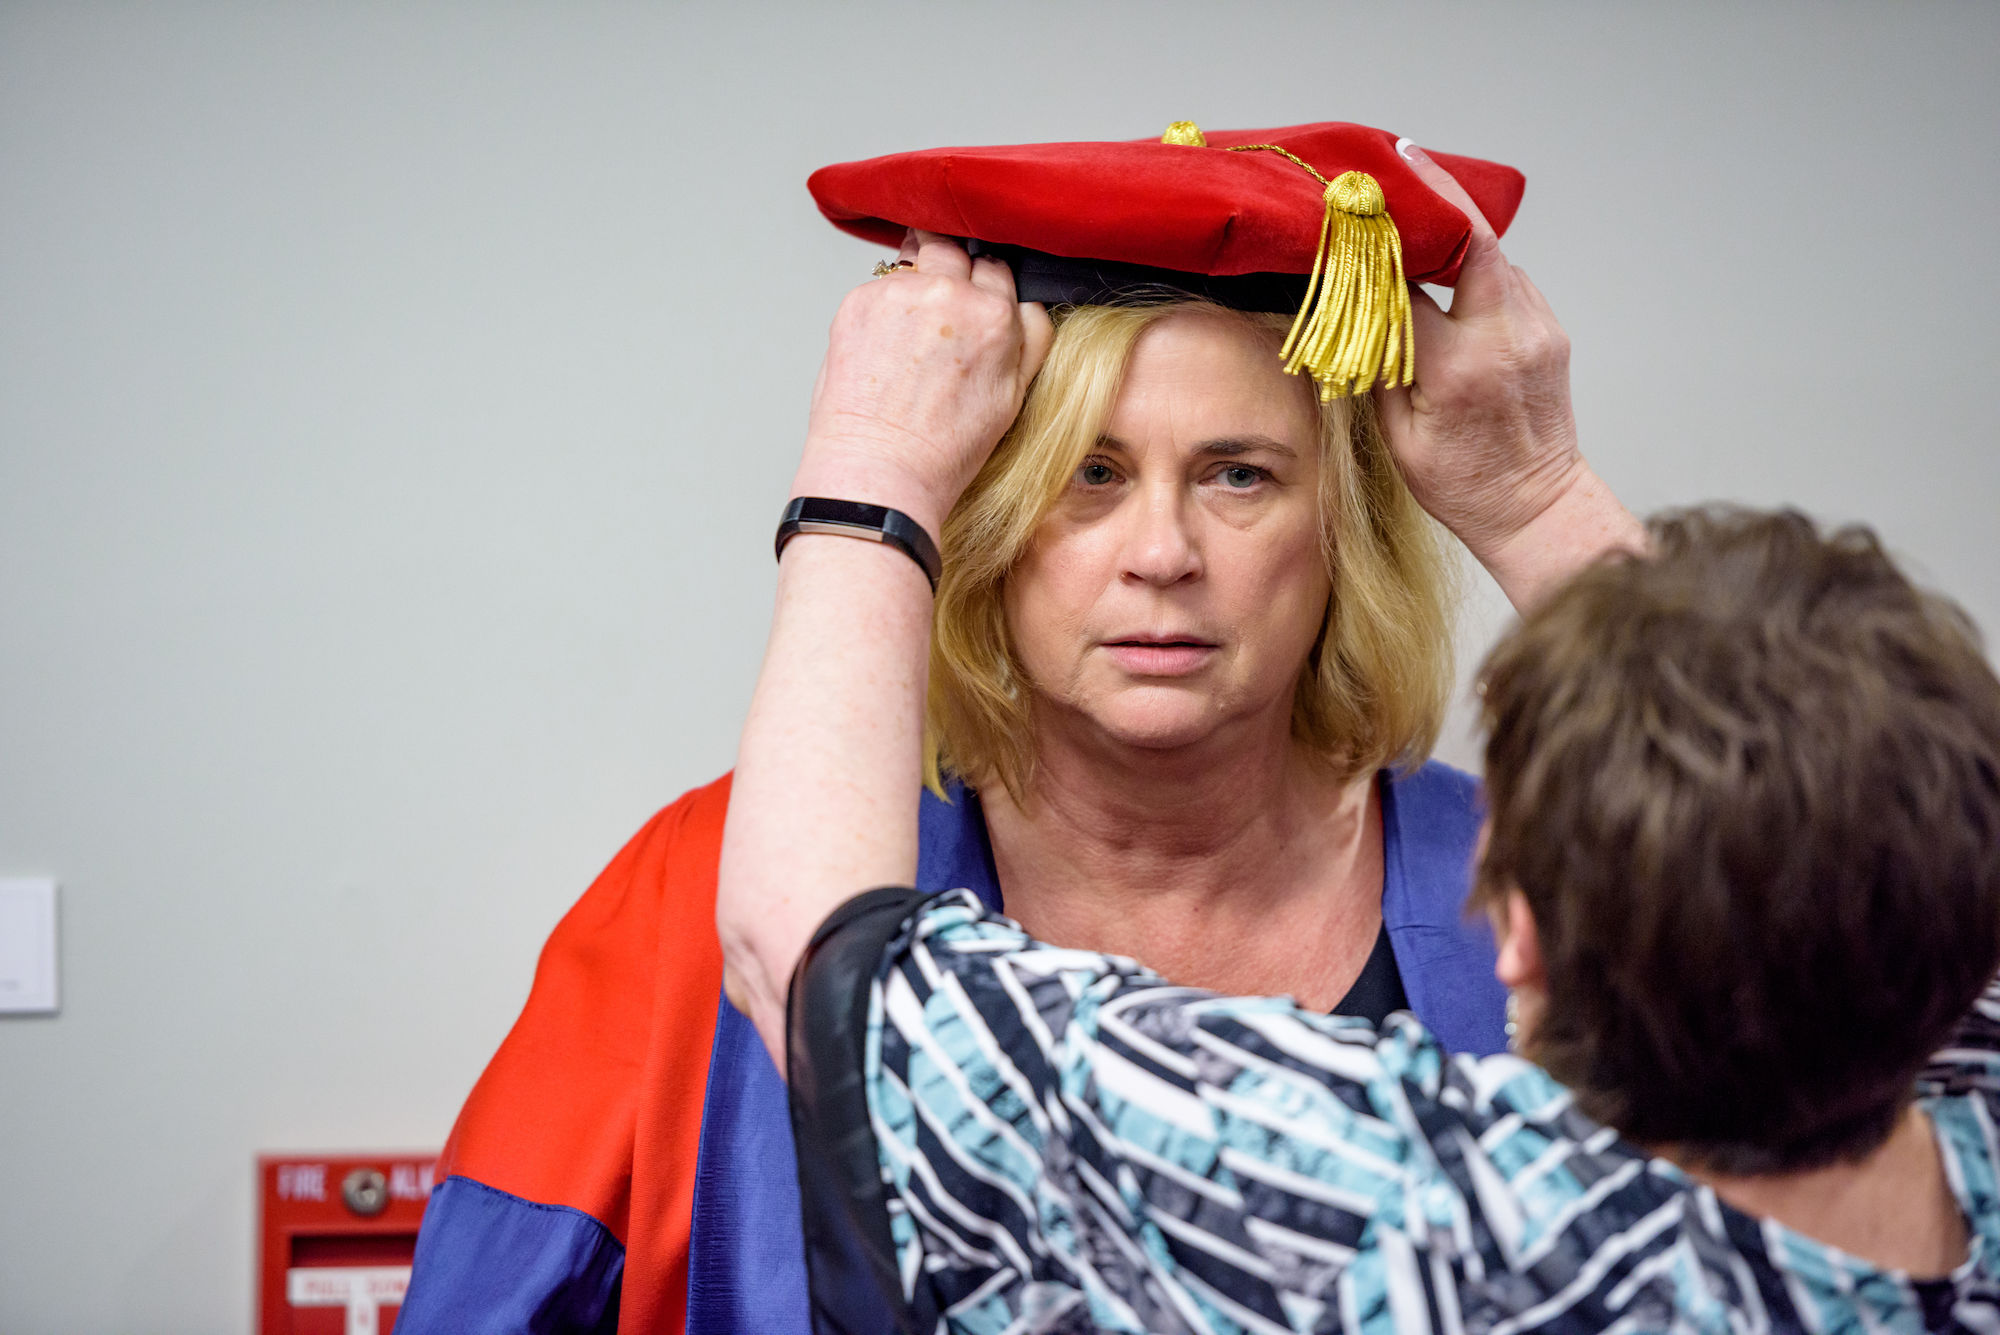 RHIT_Commencement_Platform_Party_Robing-17576.jpg